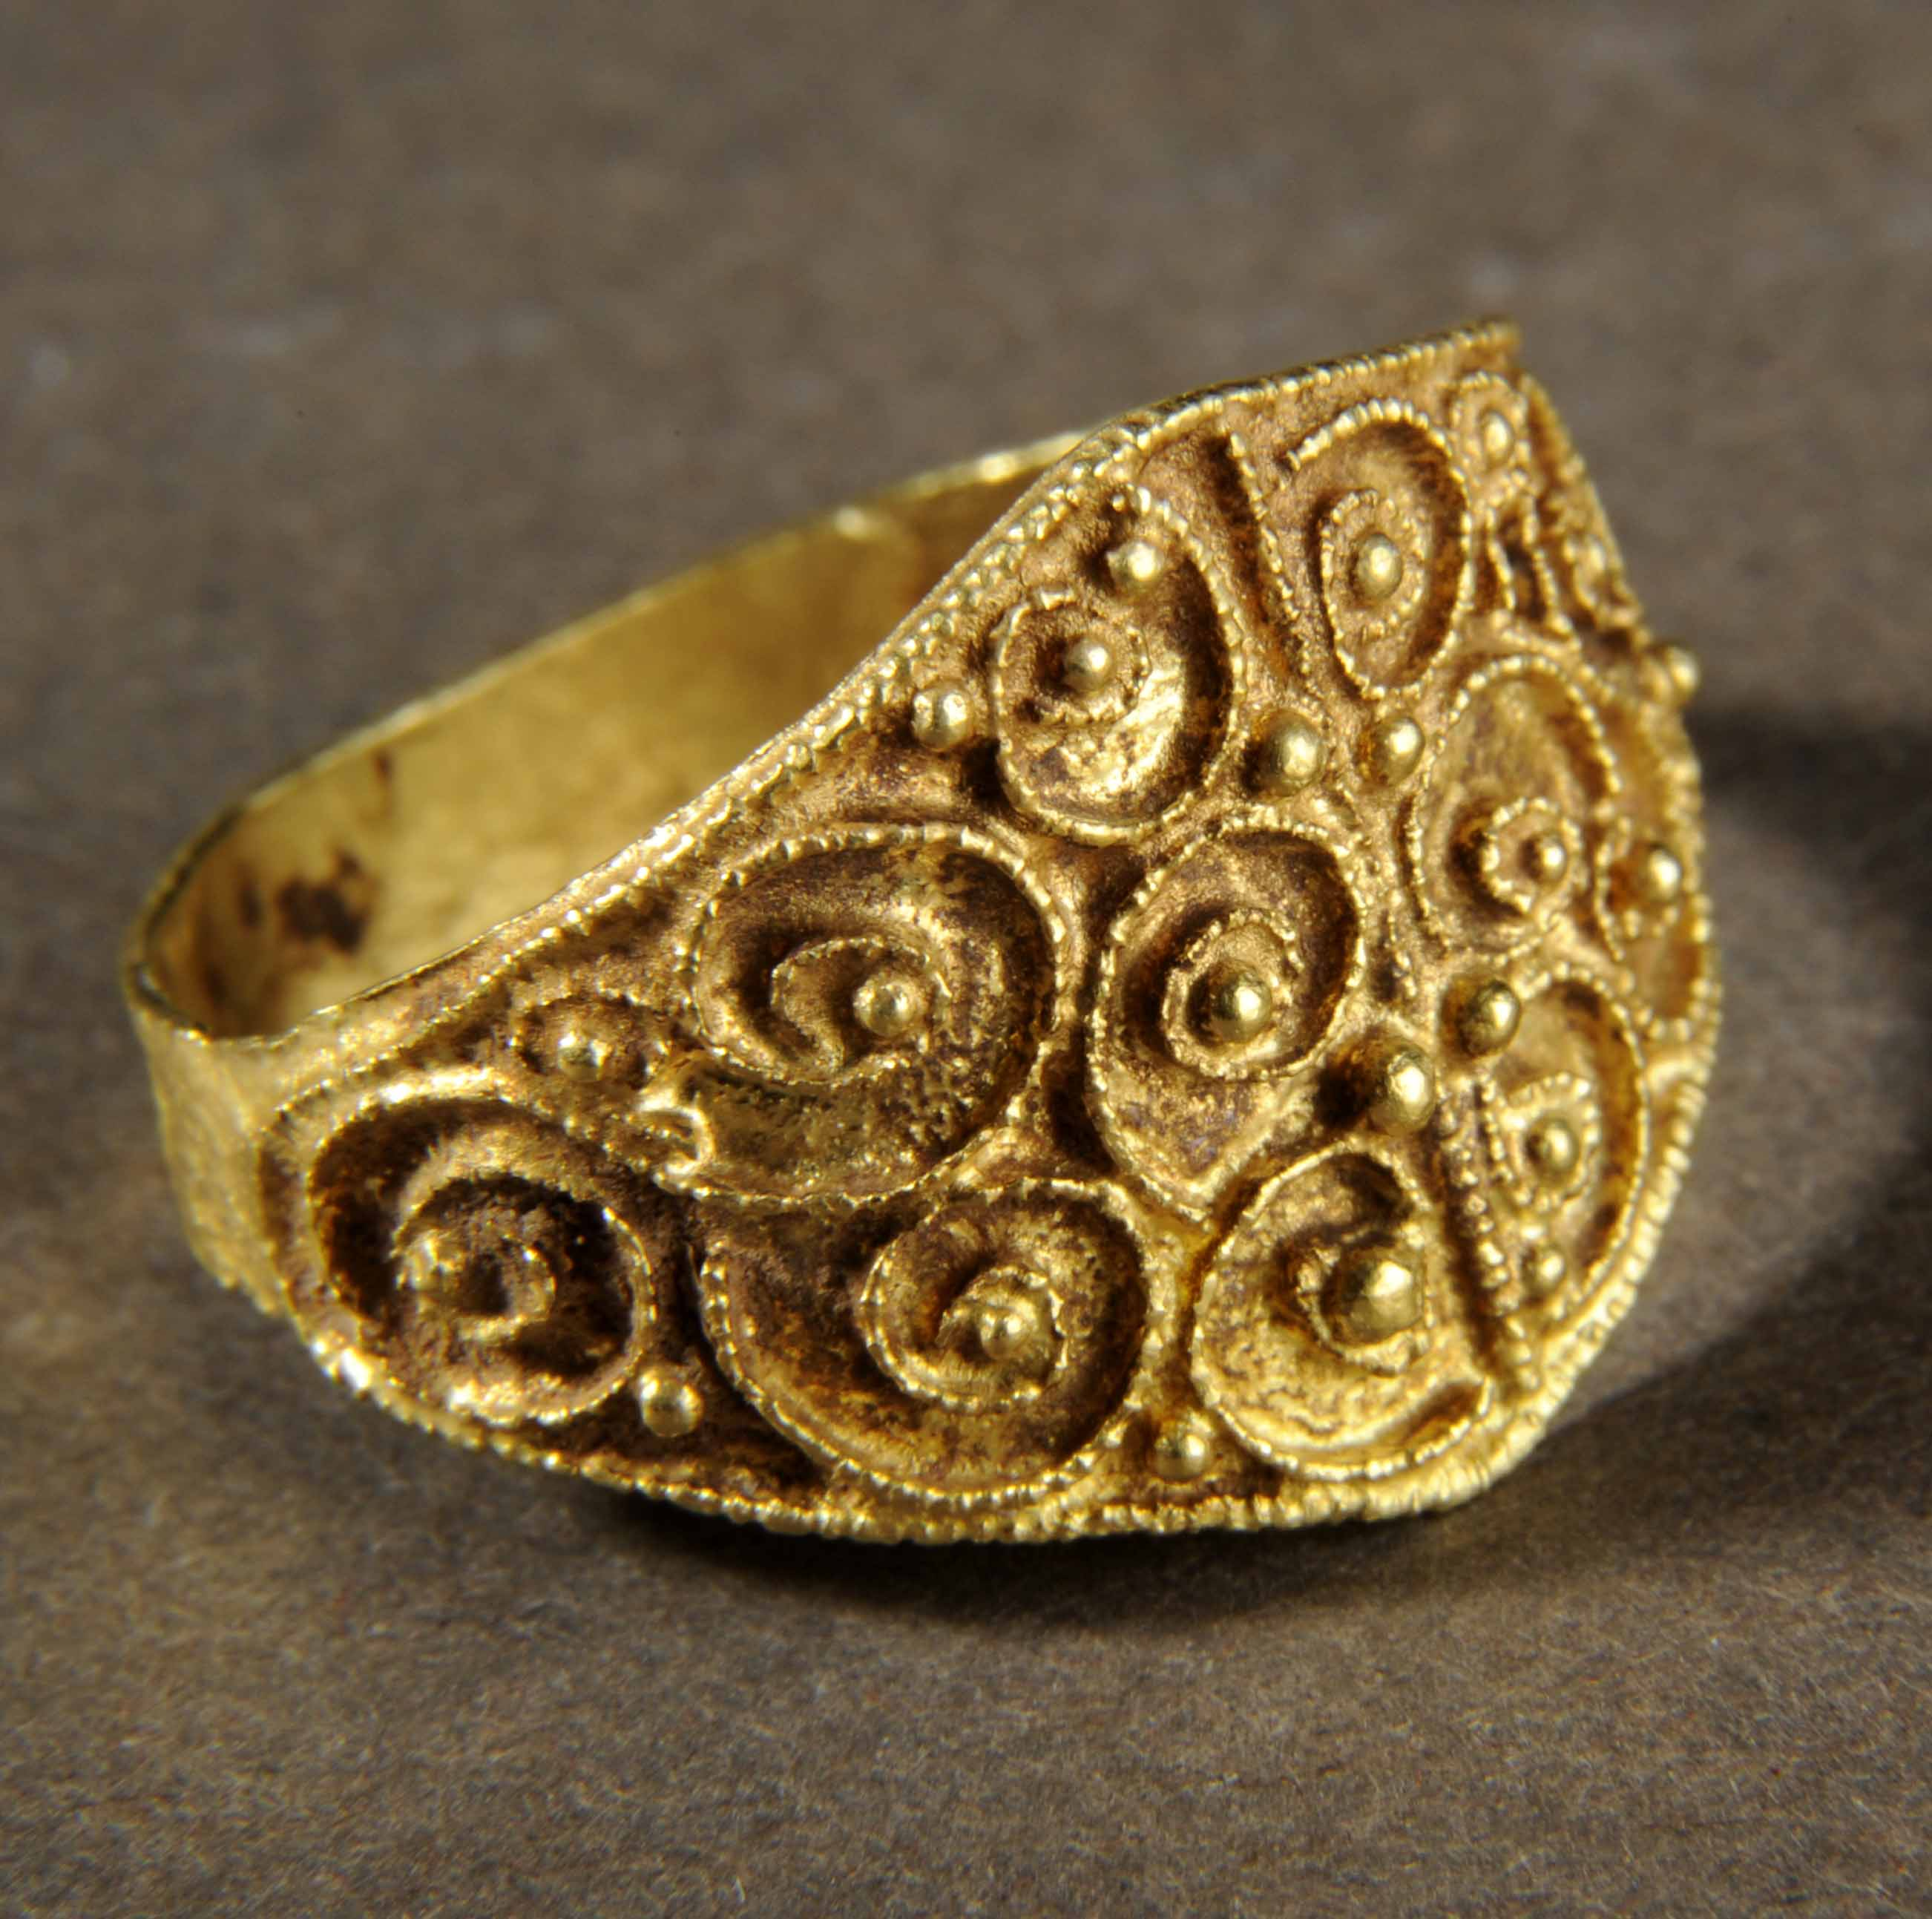 Medieval gold ring with detailed filigree design or swirls and small gold balls.